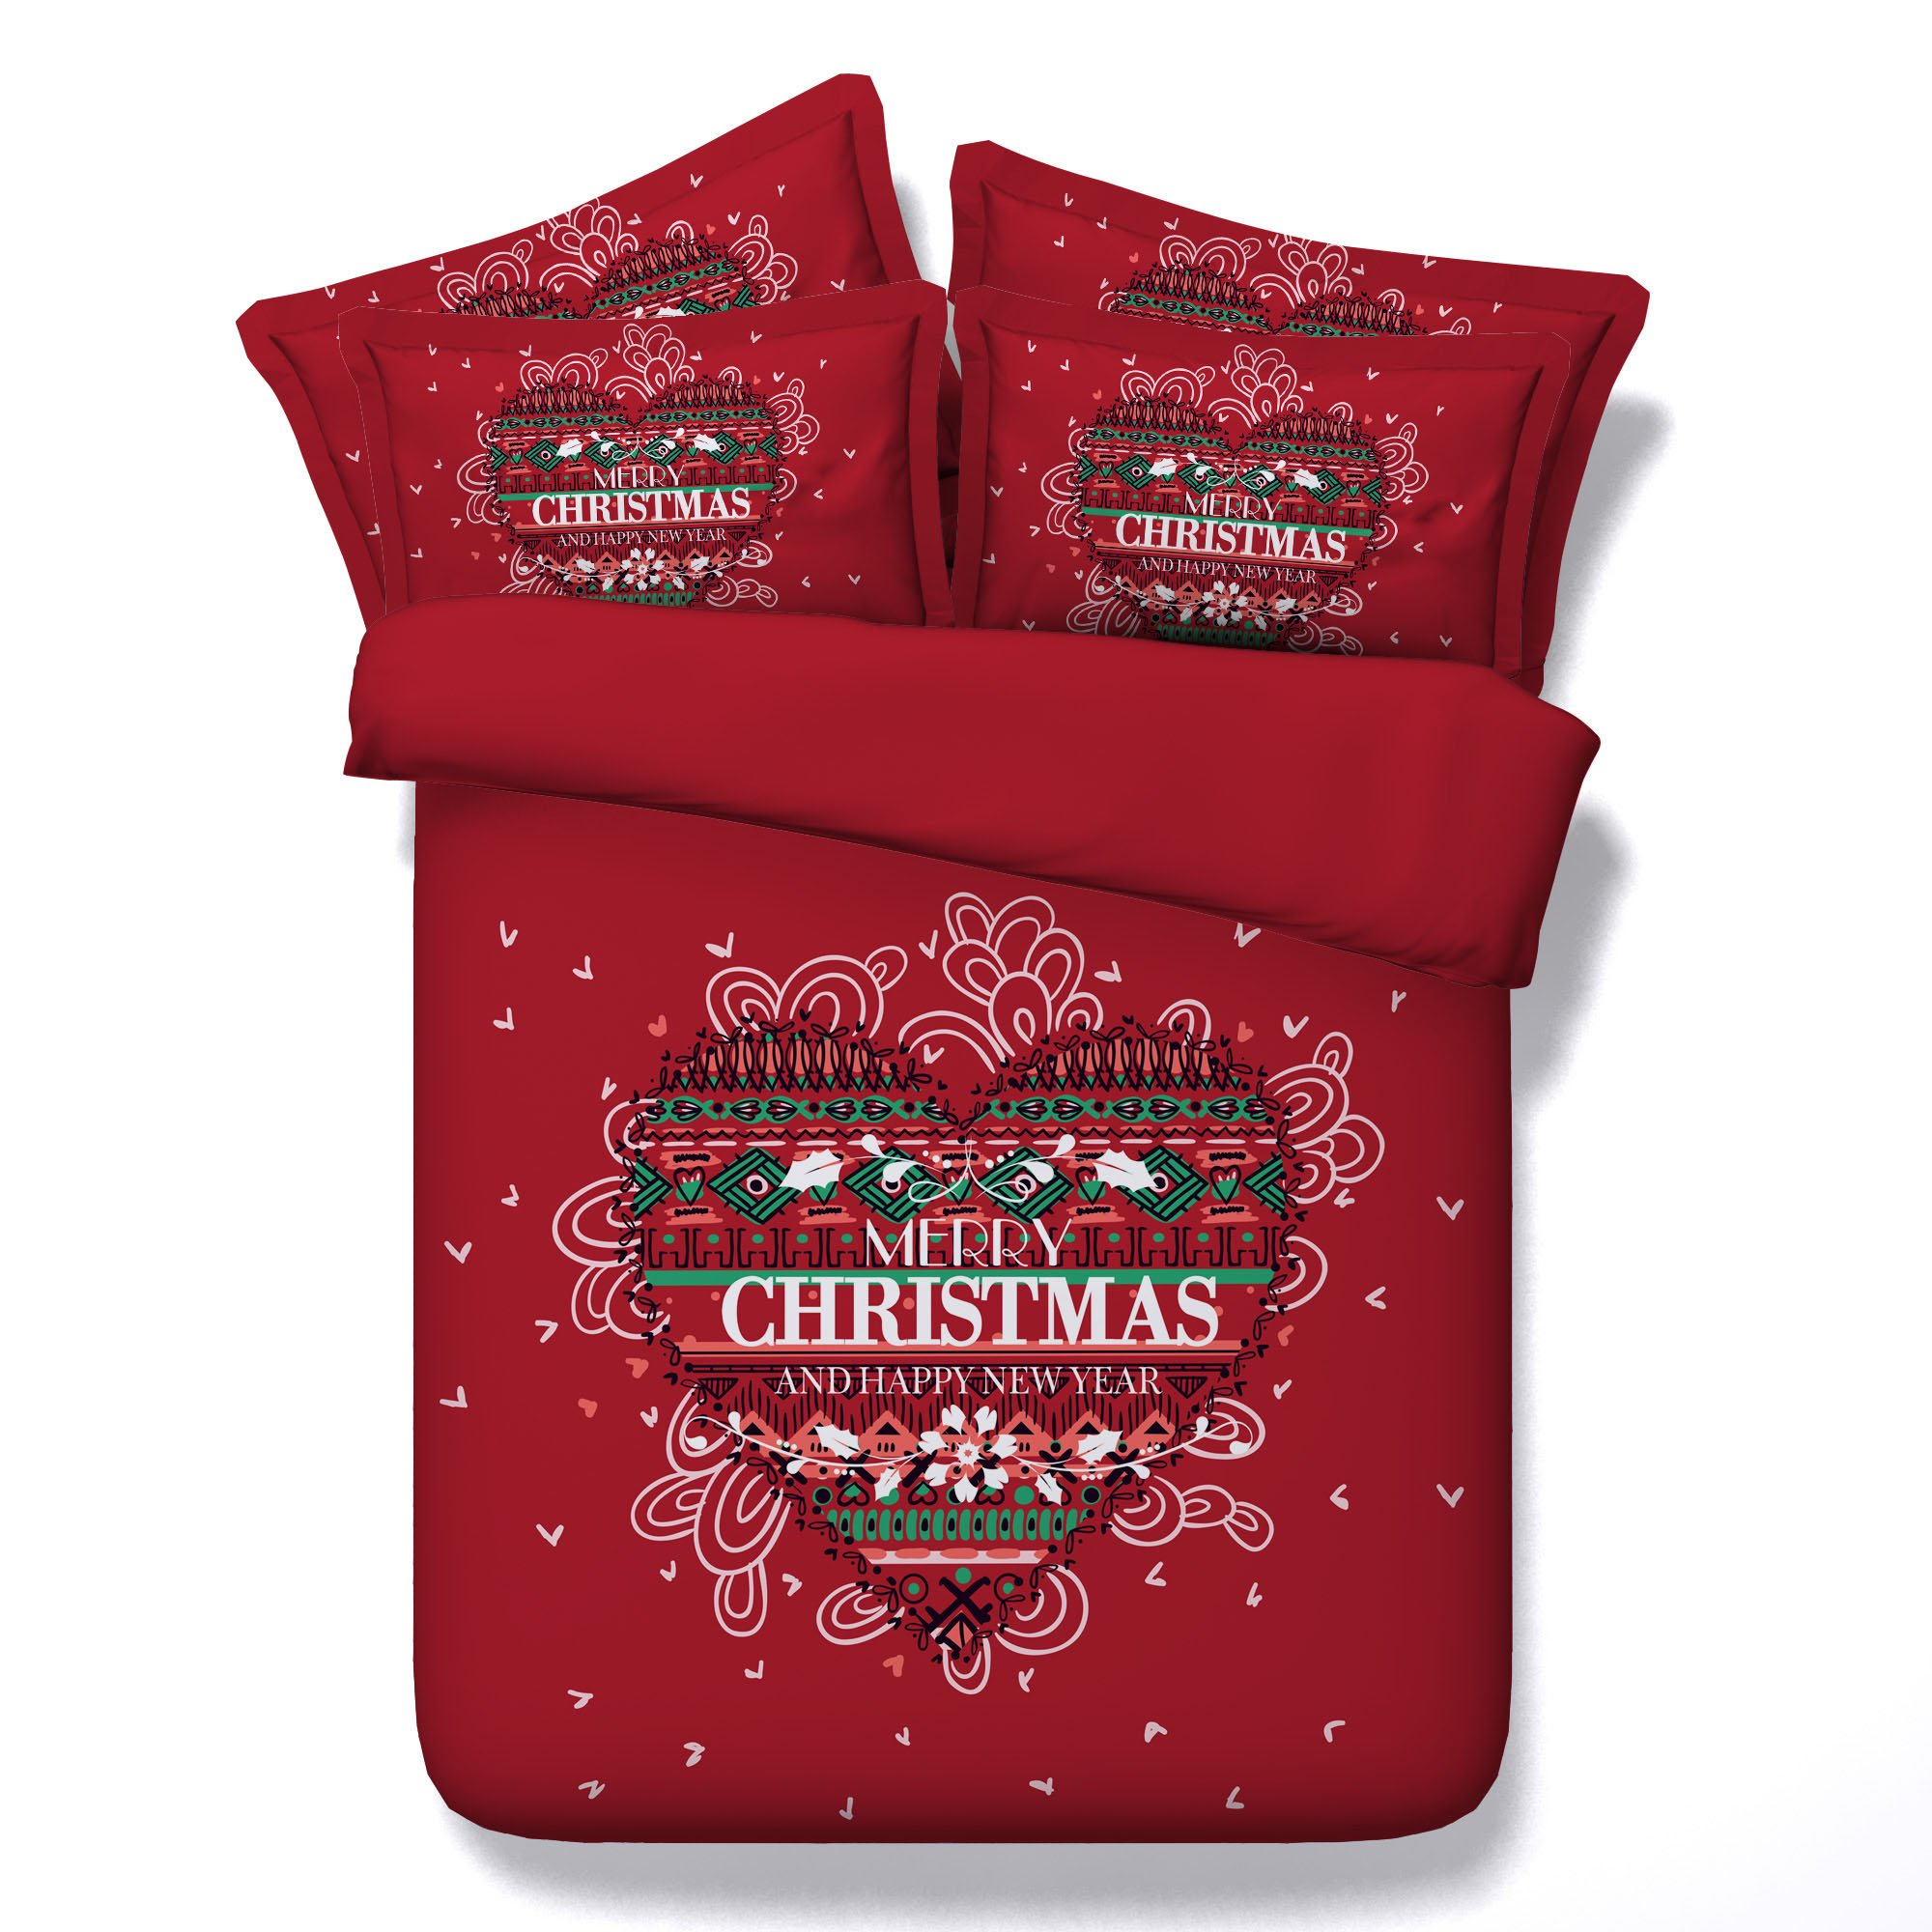 3D Christmas Cross Stitch Bedding Sets Red Duvet Cover Set Heat Love Bedspreads 3 Piece Set for Teens Adults Children Boys Girls Traditional Designer (Cal King)